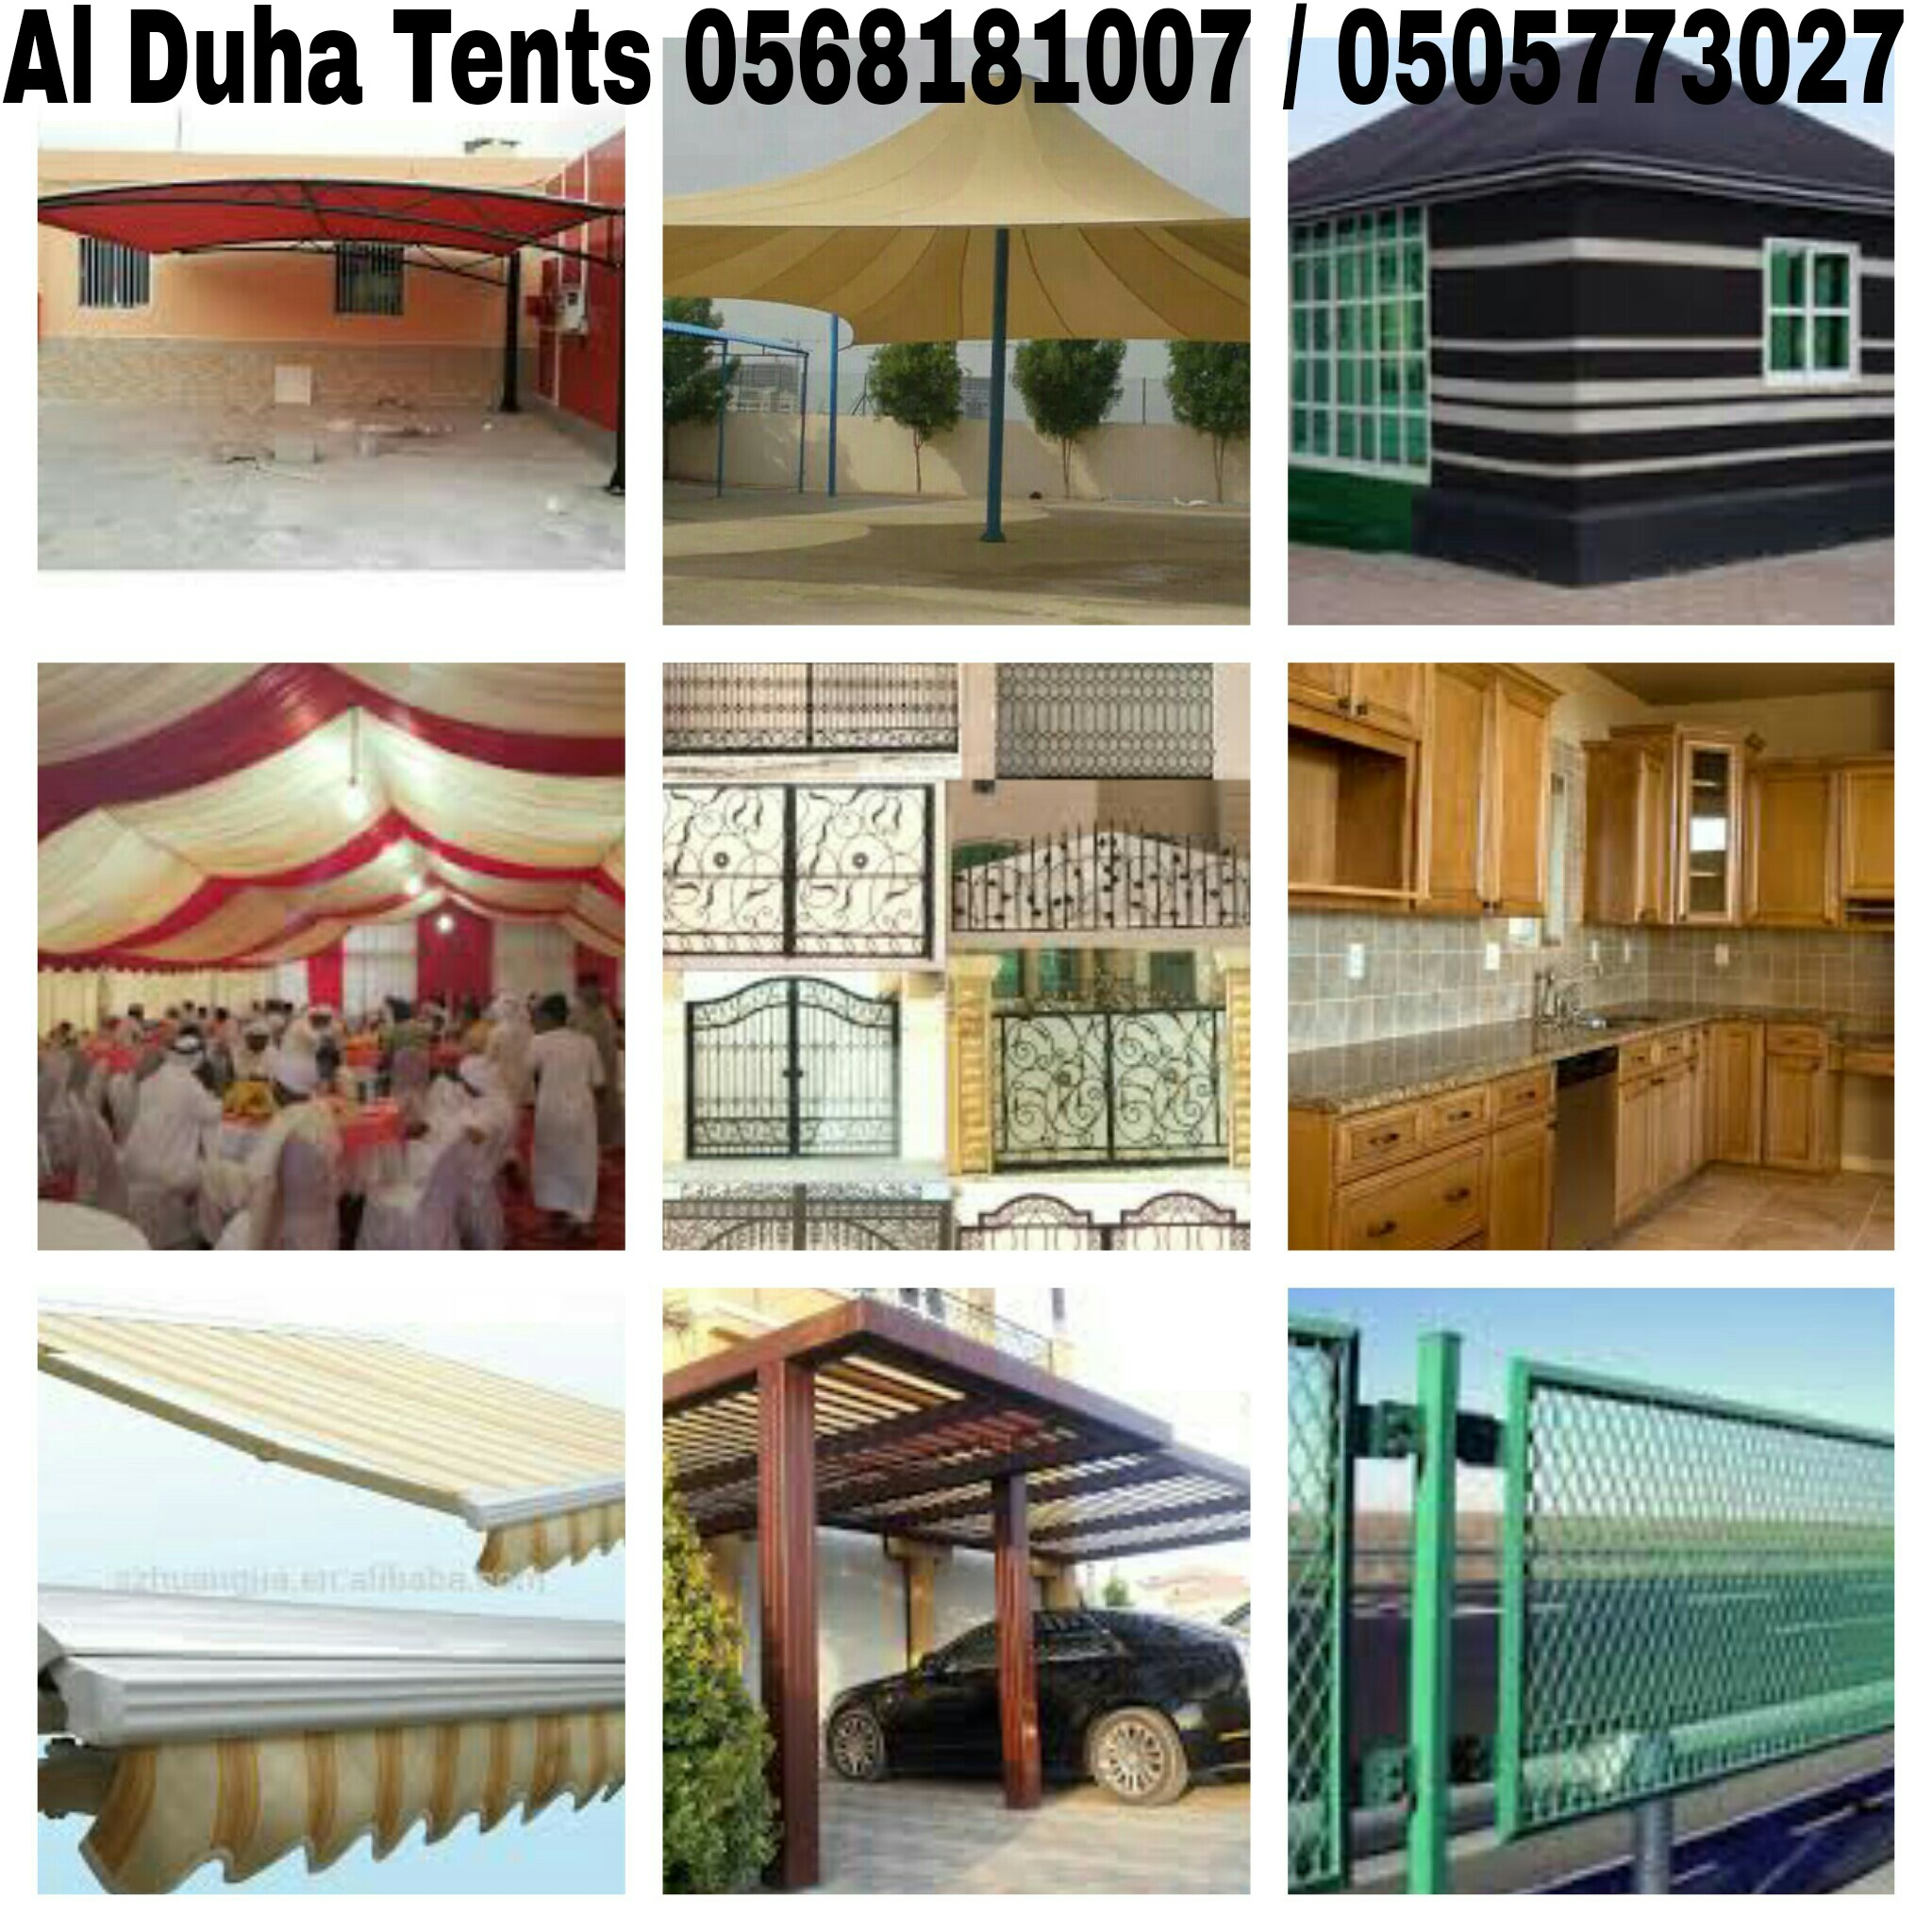 Canopy Suppliers  Awnings Suppliers  Tensile Shades Suppliers  tents and shades  Sail Shades Manufacturers